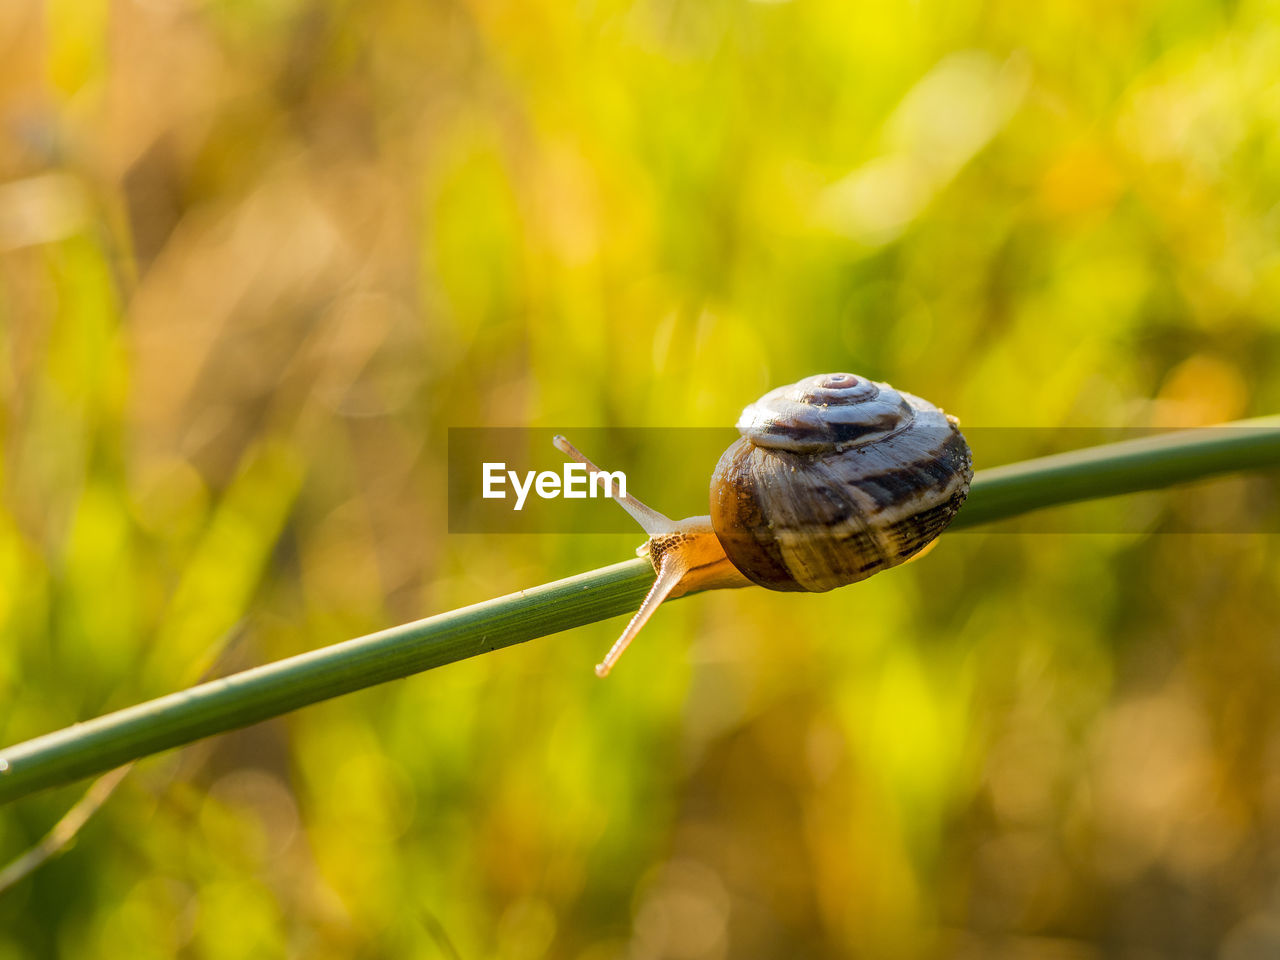 animal wildlife, invertebrate, one animal, animal, mollusk, animal themes, snail, gastropod, animals in the wild, close-up, focus on foreground, shell, animal shell, animal antenna, day, nature, plant, no people, insect, animal body part, outdoors, small